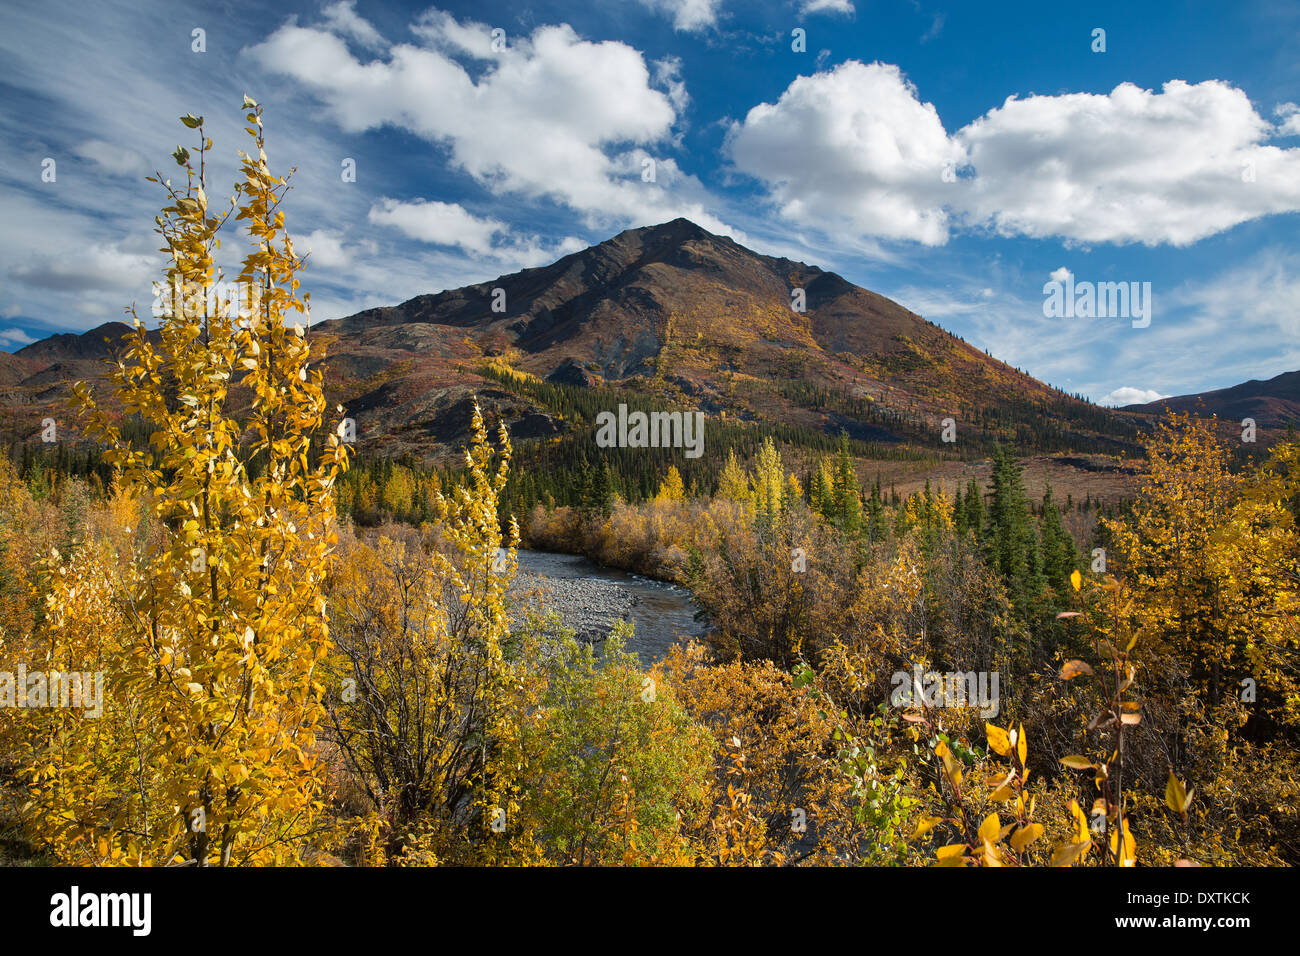 Couleurs d'automne frangeant la route Dempster, au Yukon, Canada Photo Stock